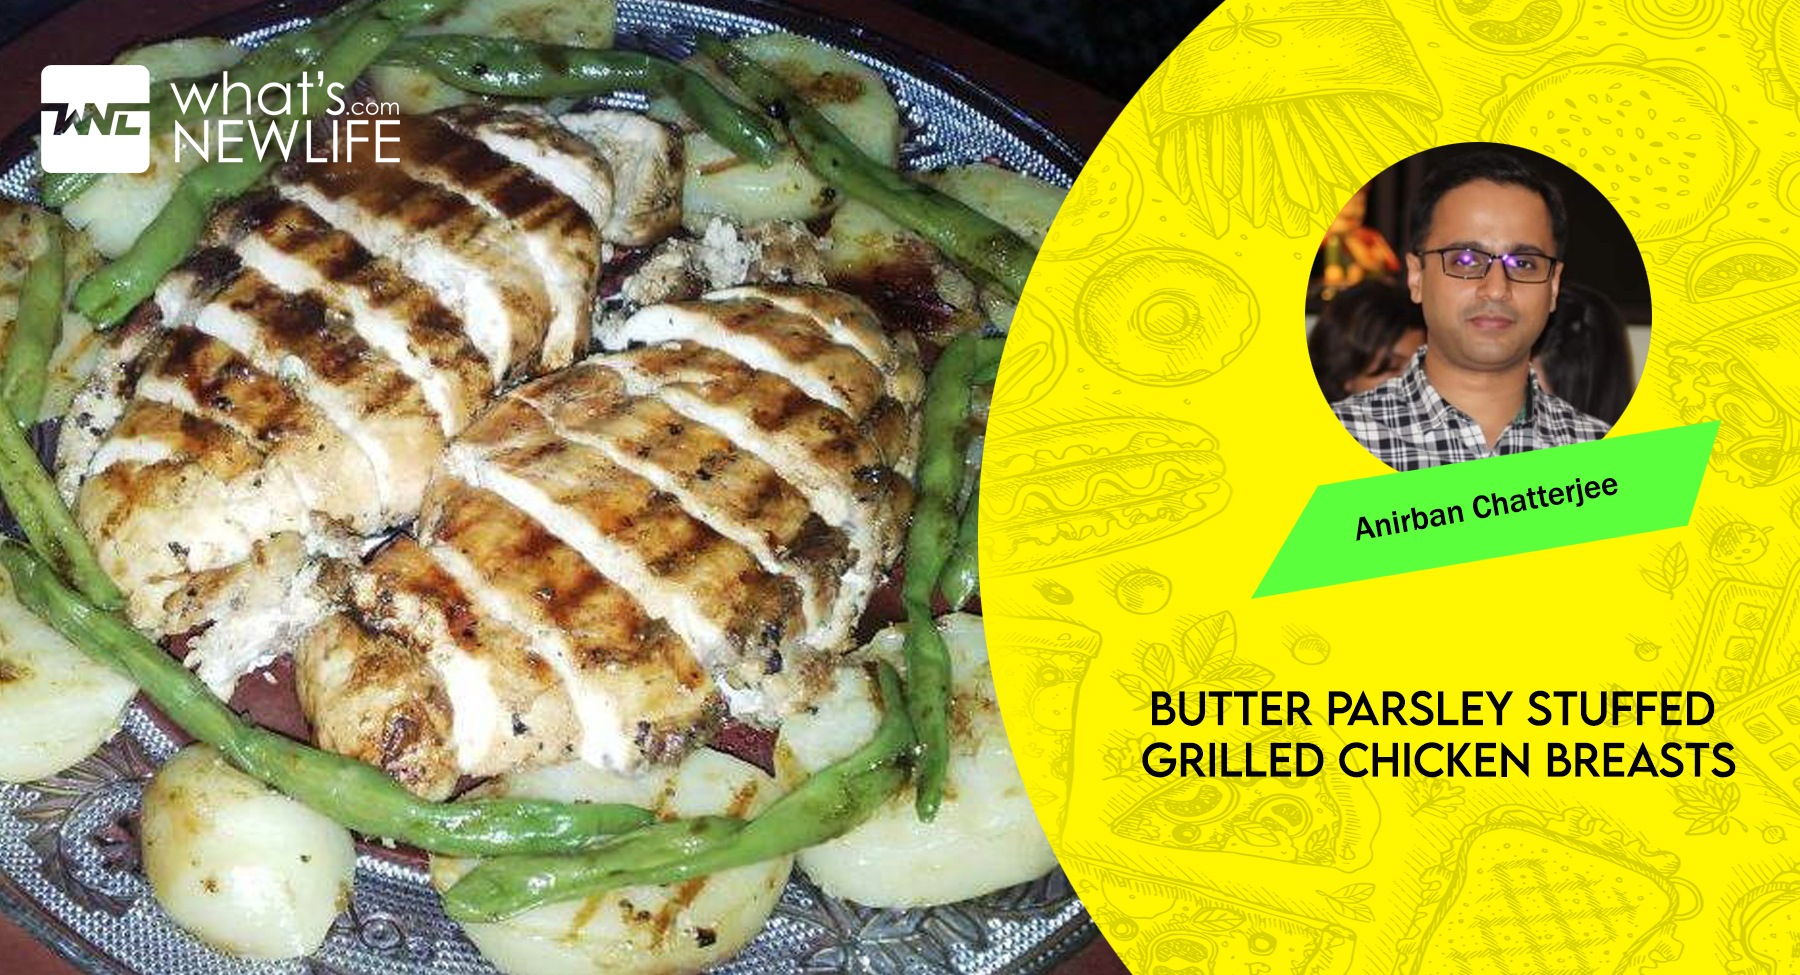 BUTTER PARSLEY STUFFED GRILLED CHICKEN BREASTS